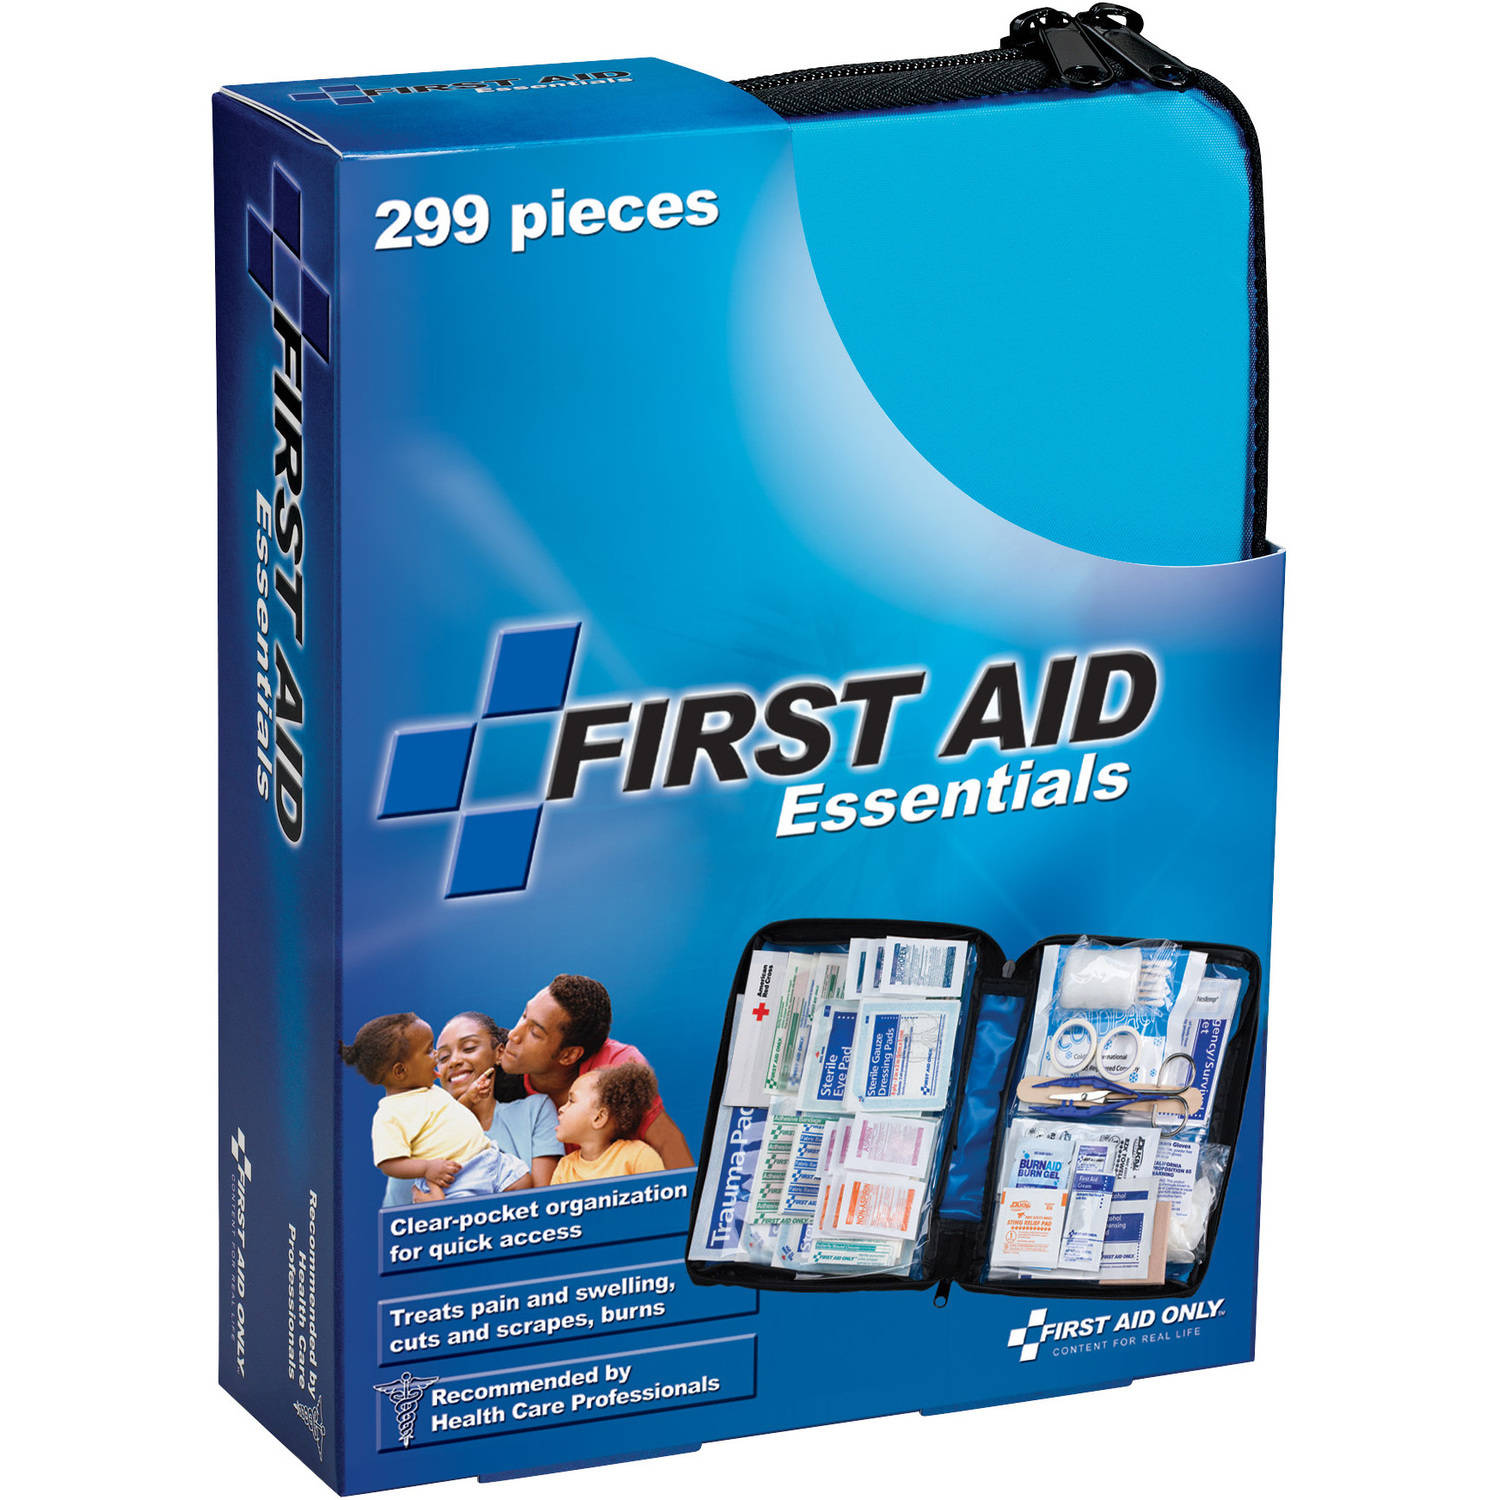 First Aid Only First Aid Essentials Kit, 299 pc